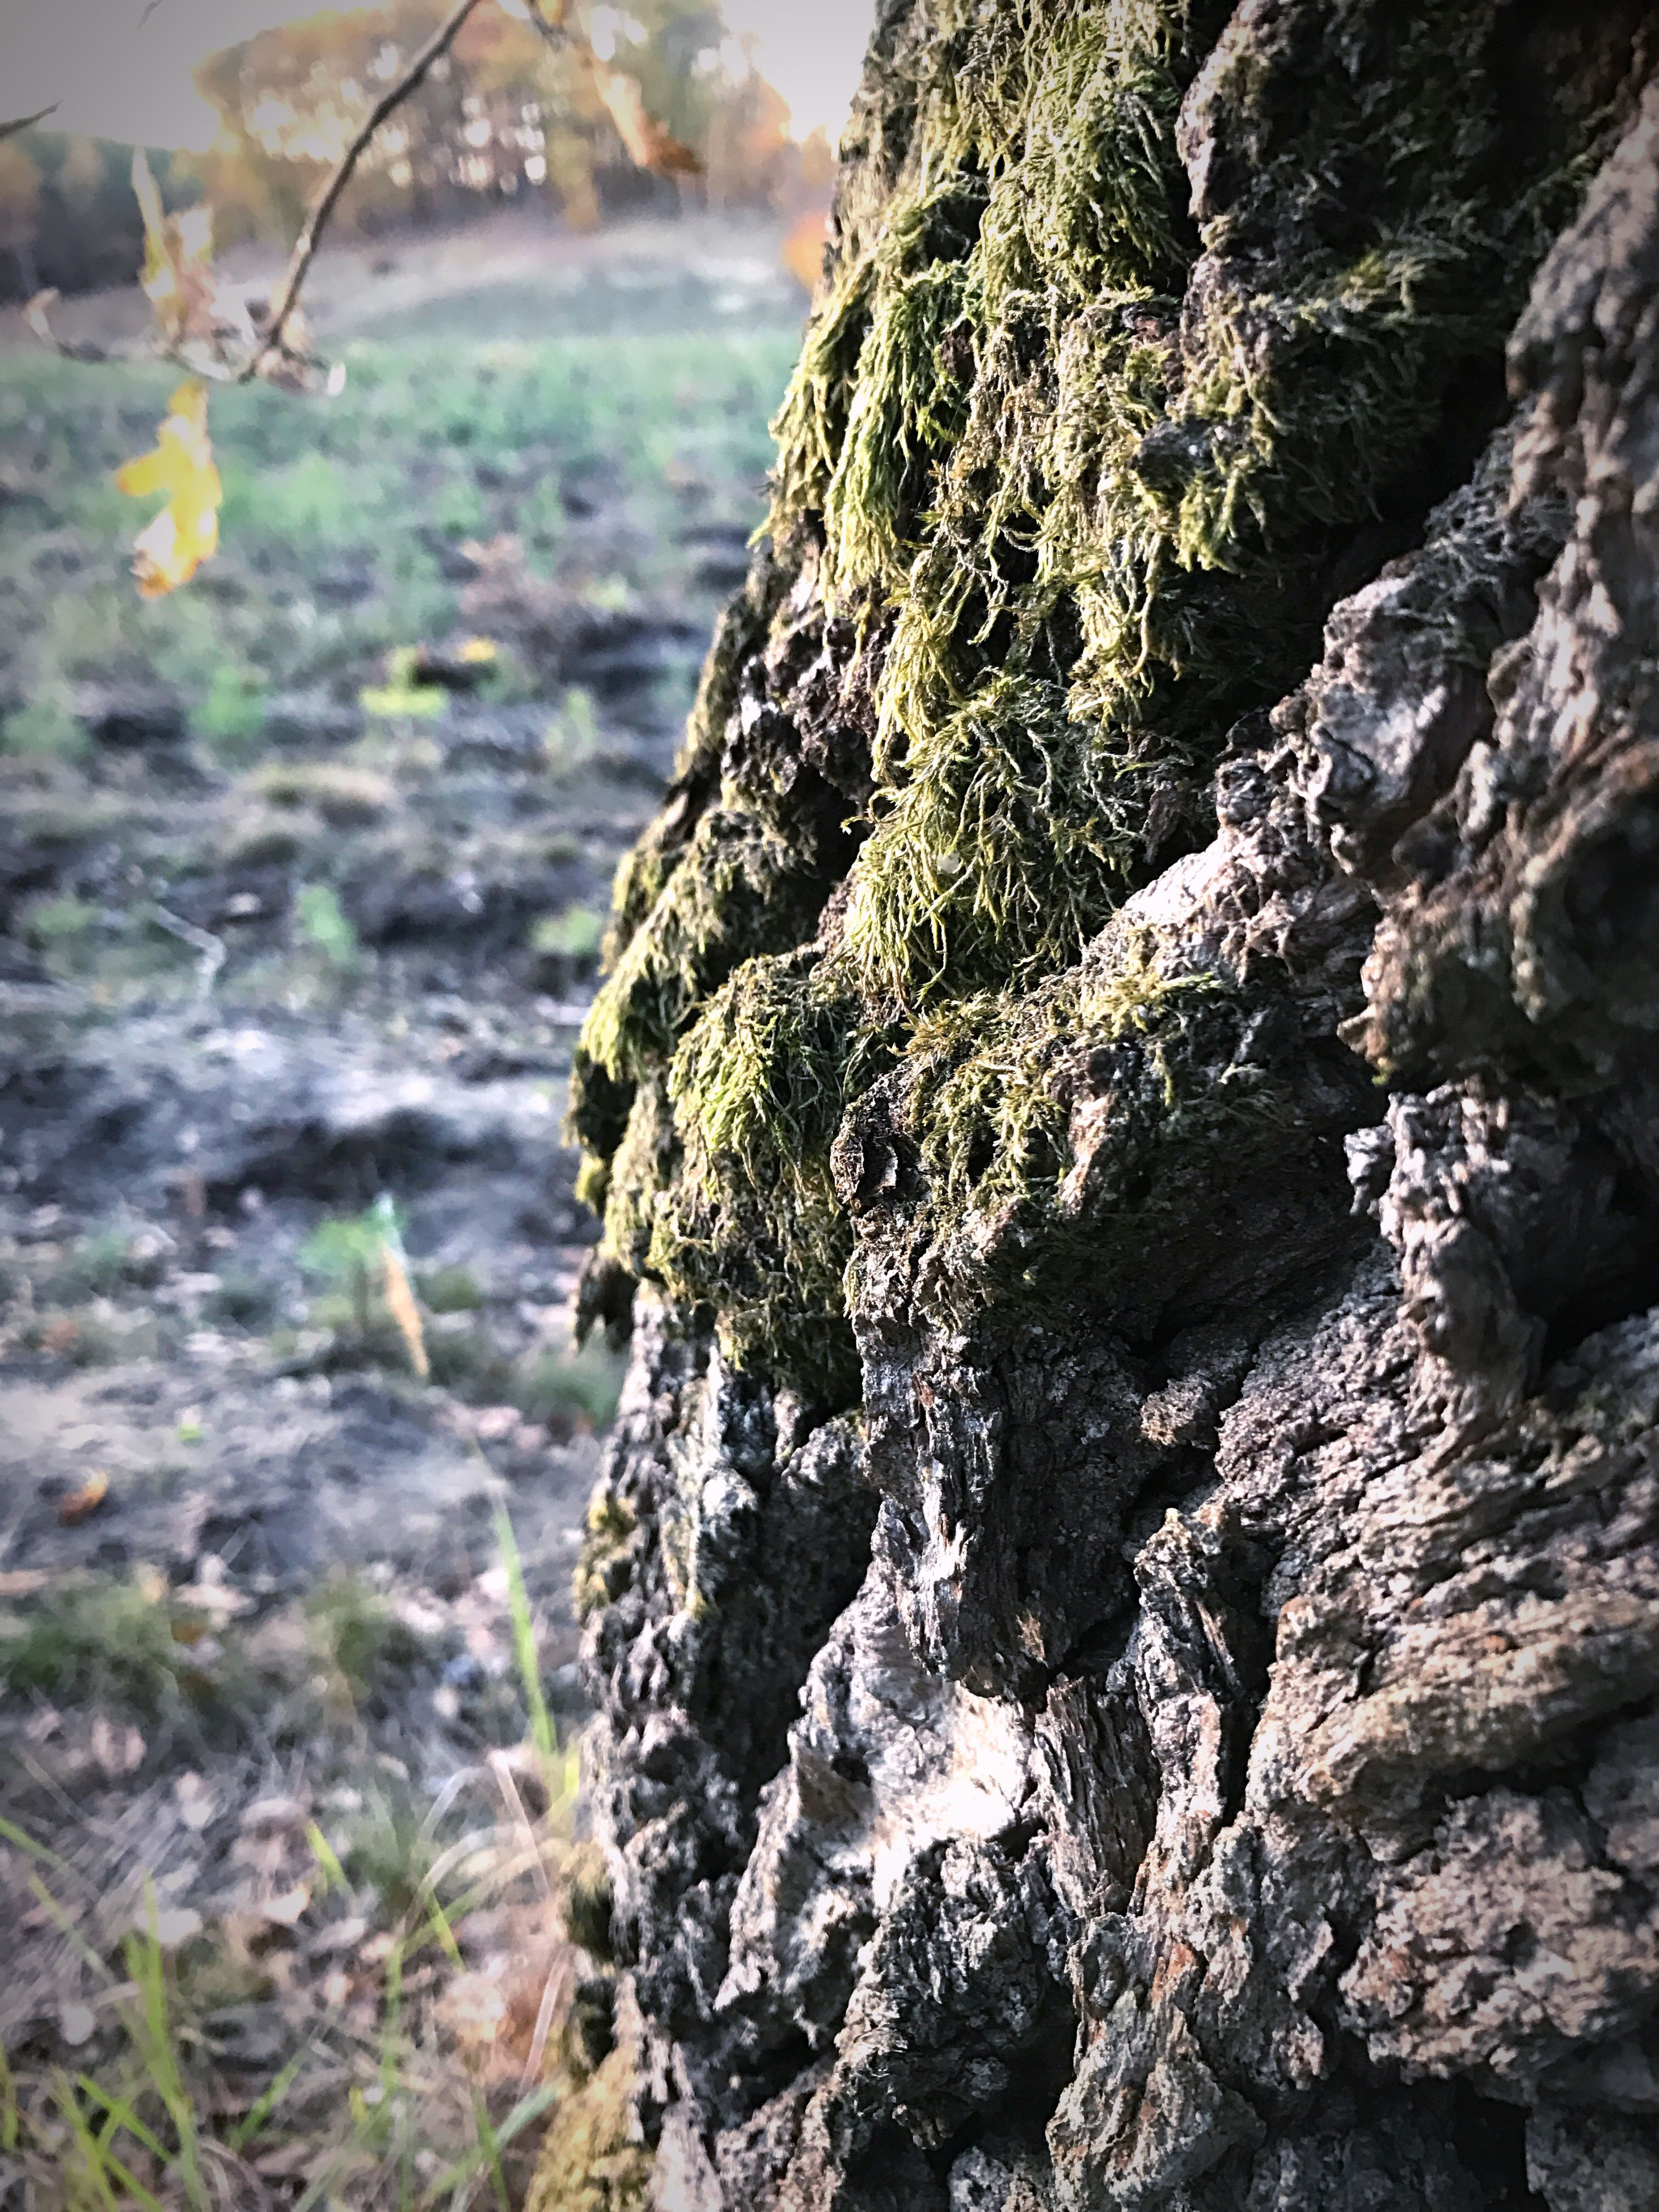 nature, close-up, beauty in nature, textured, no people, outdoors, day, tree, huge